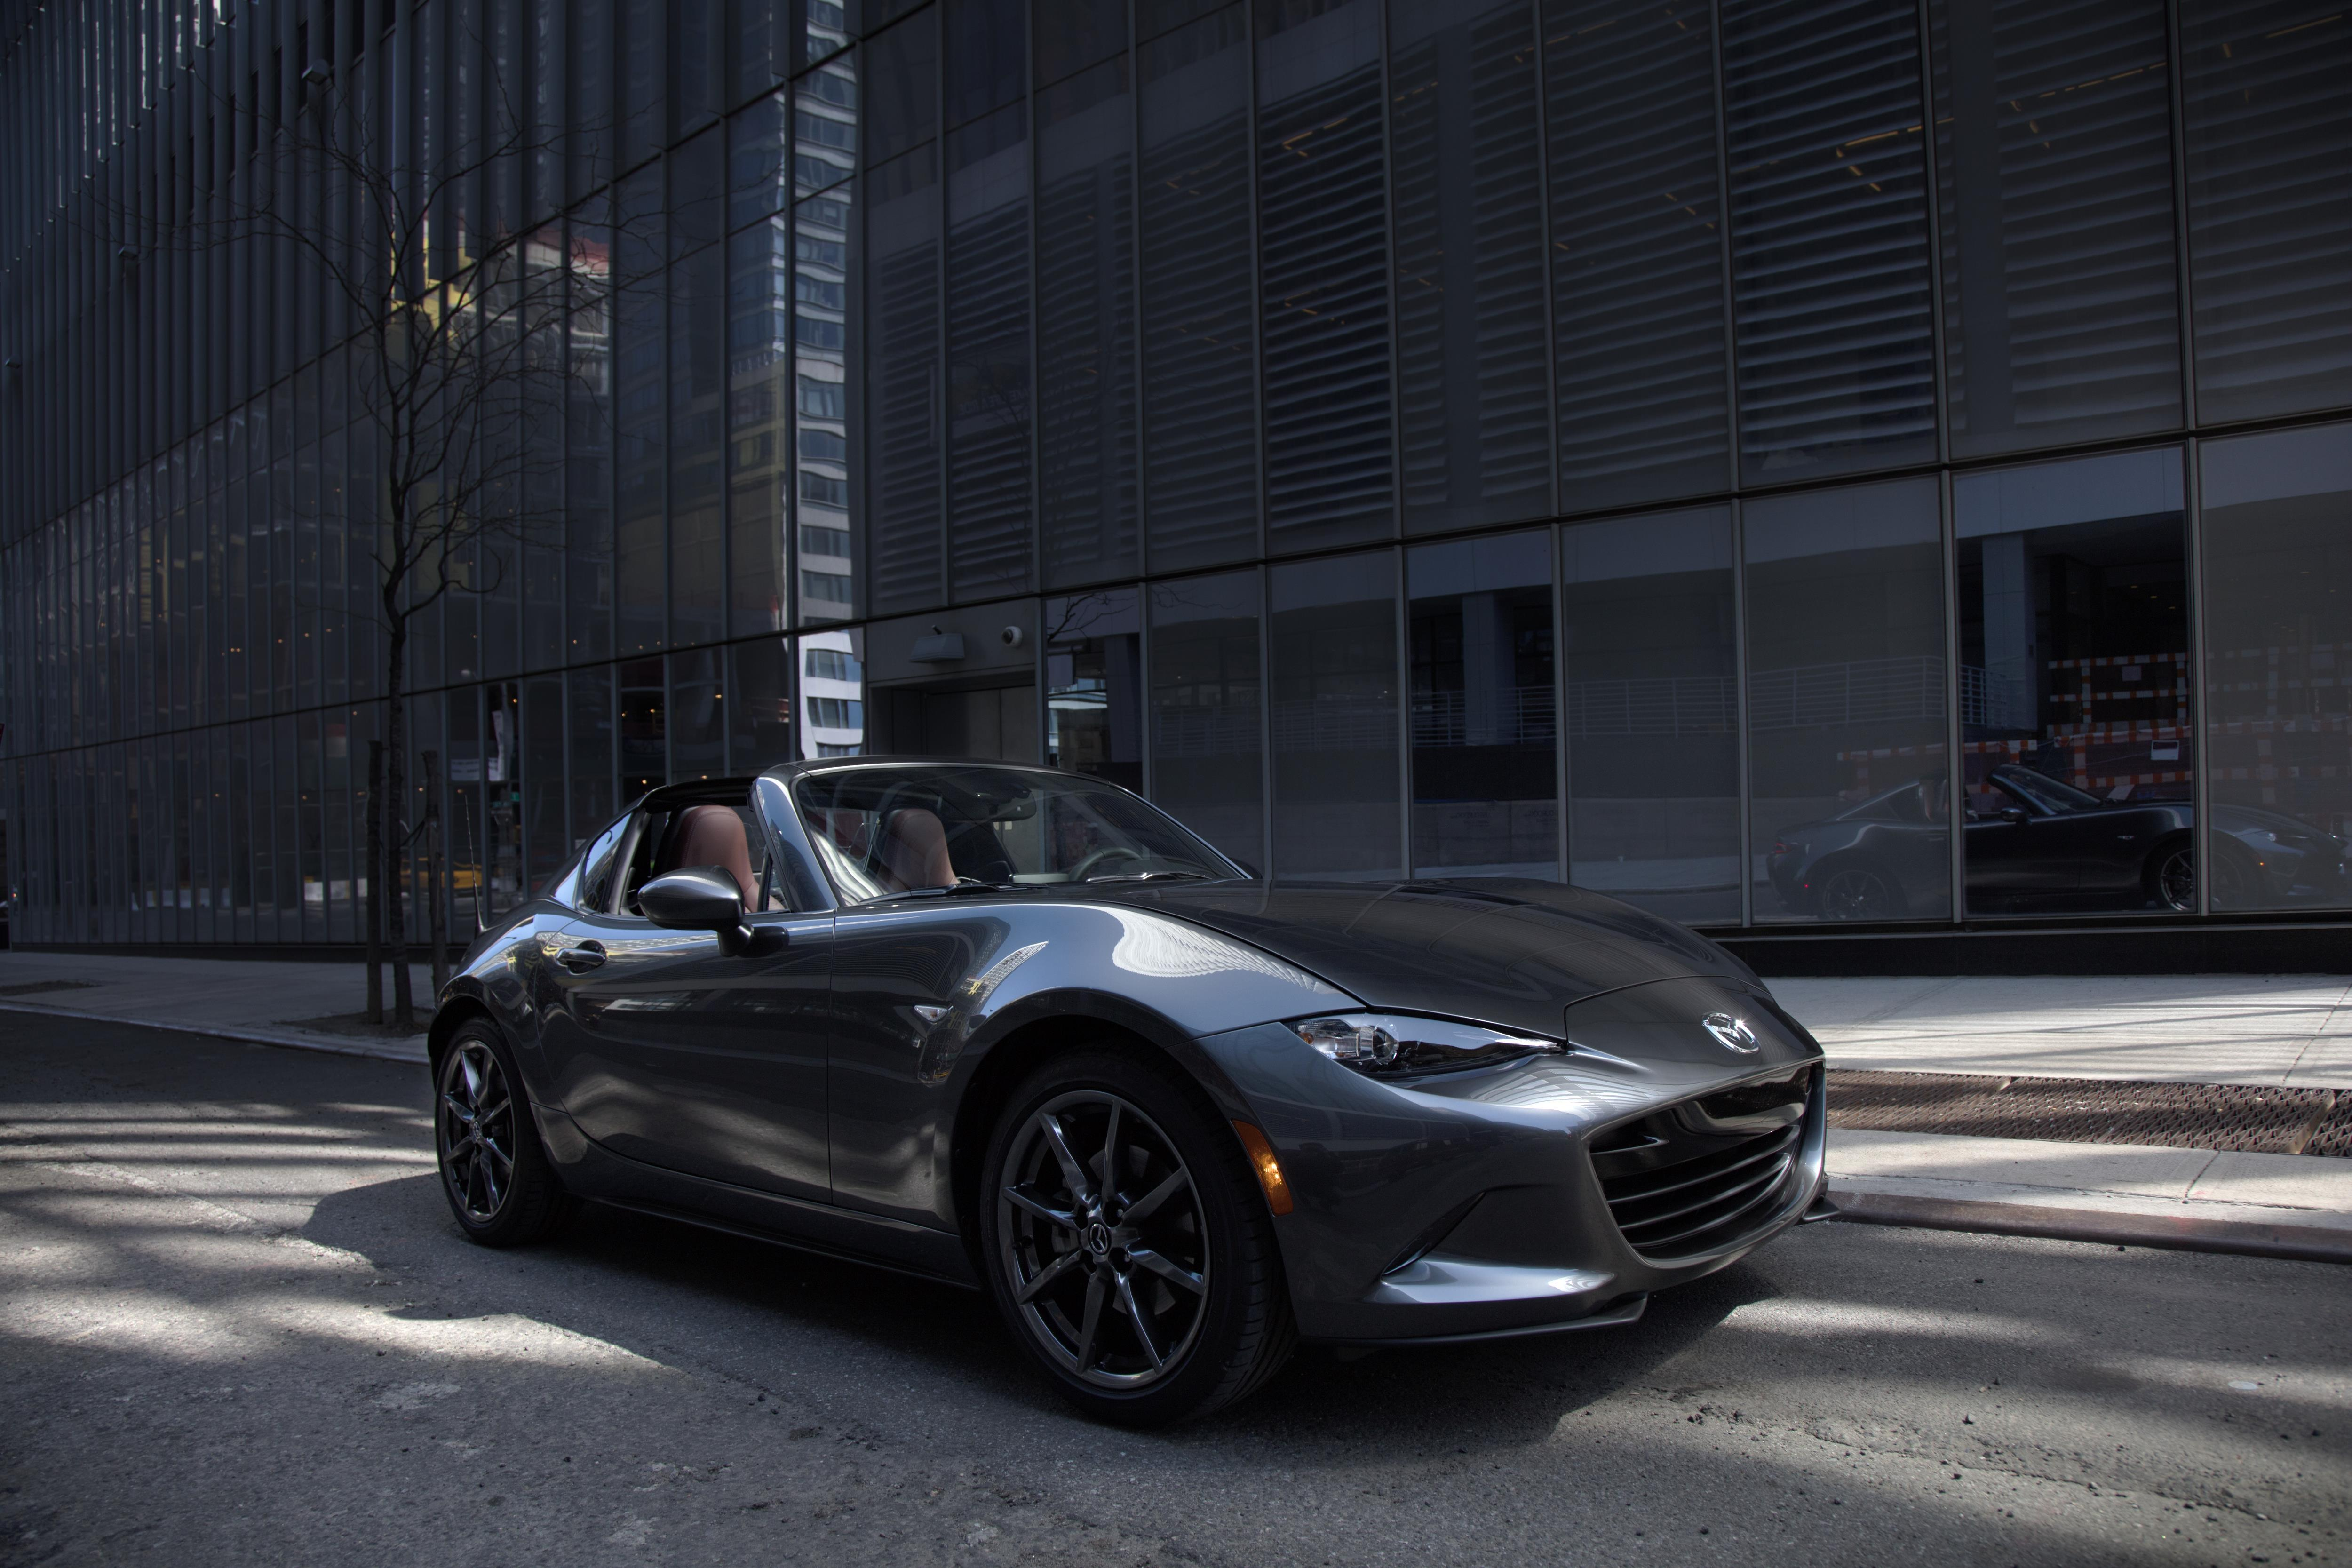 2017 Mazda MX-5 RF, HD Cars, 4k Wallpapers, Images, Backgrounds ...